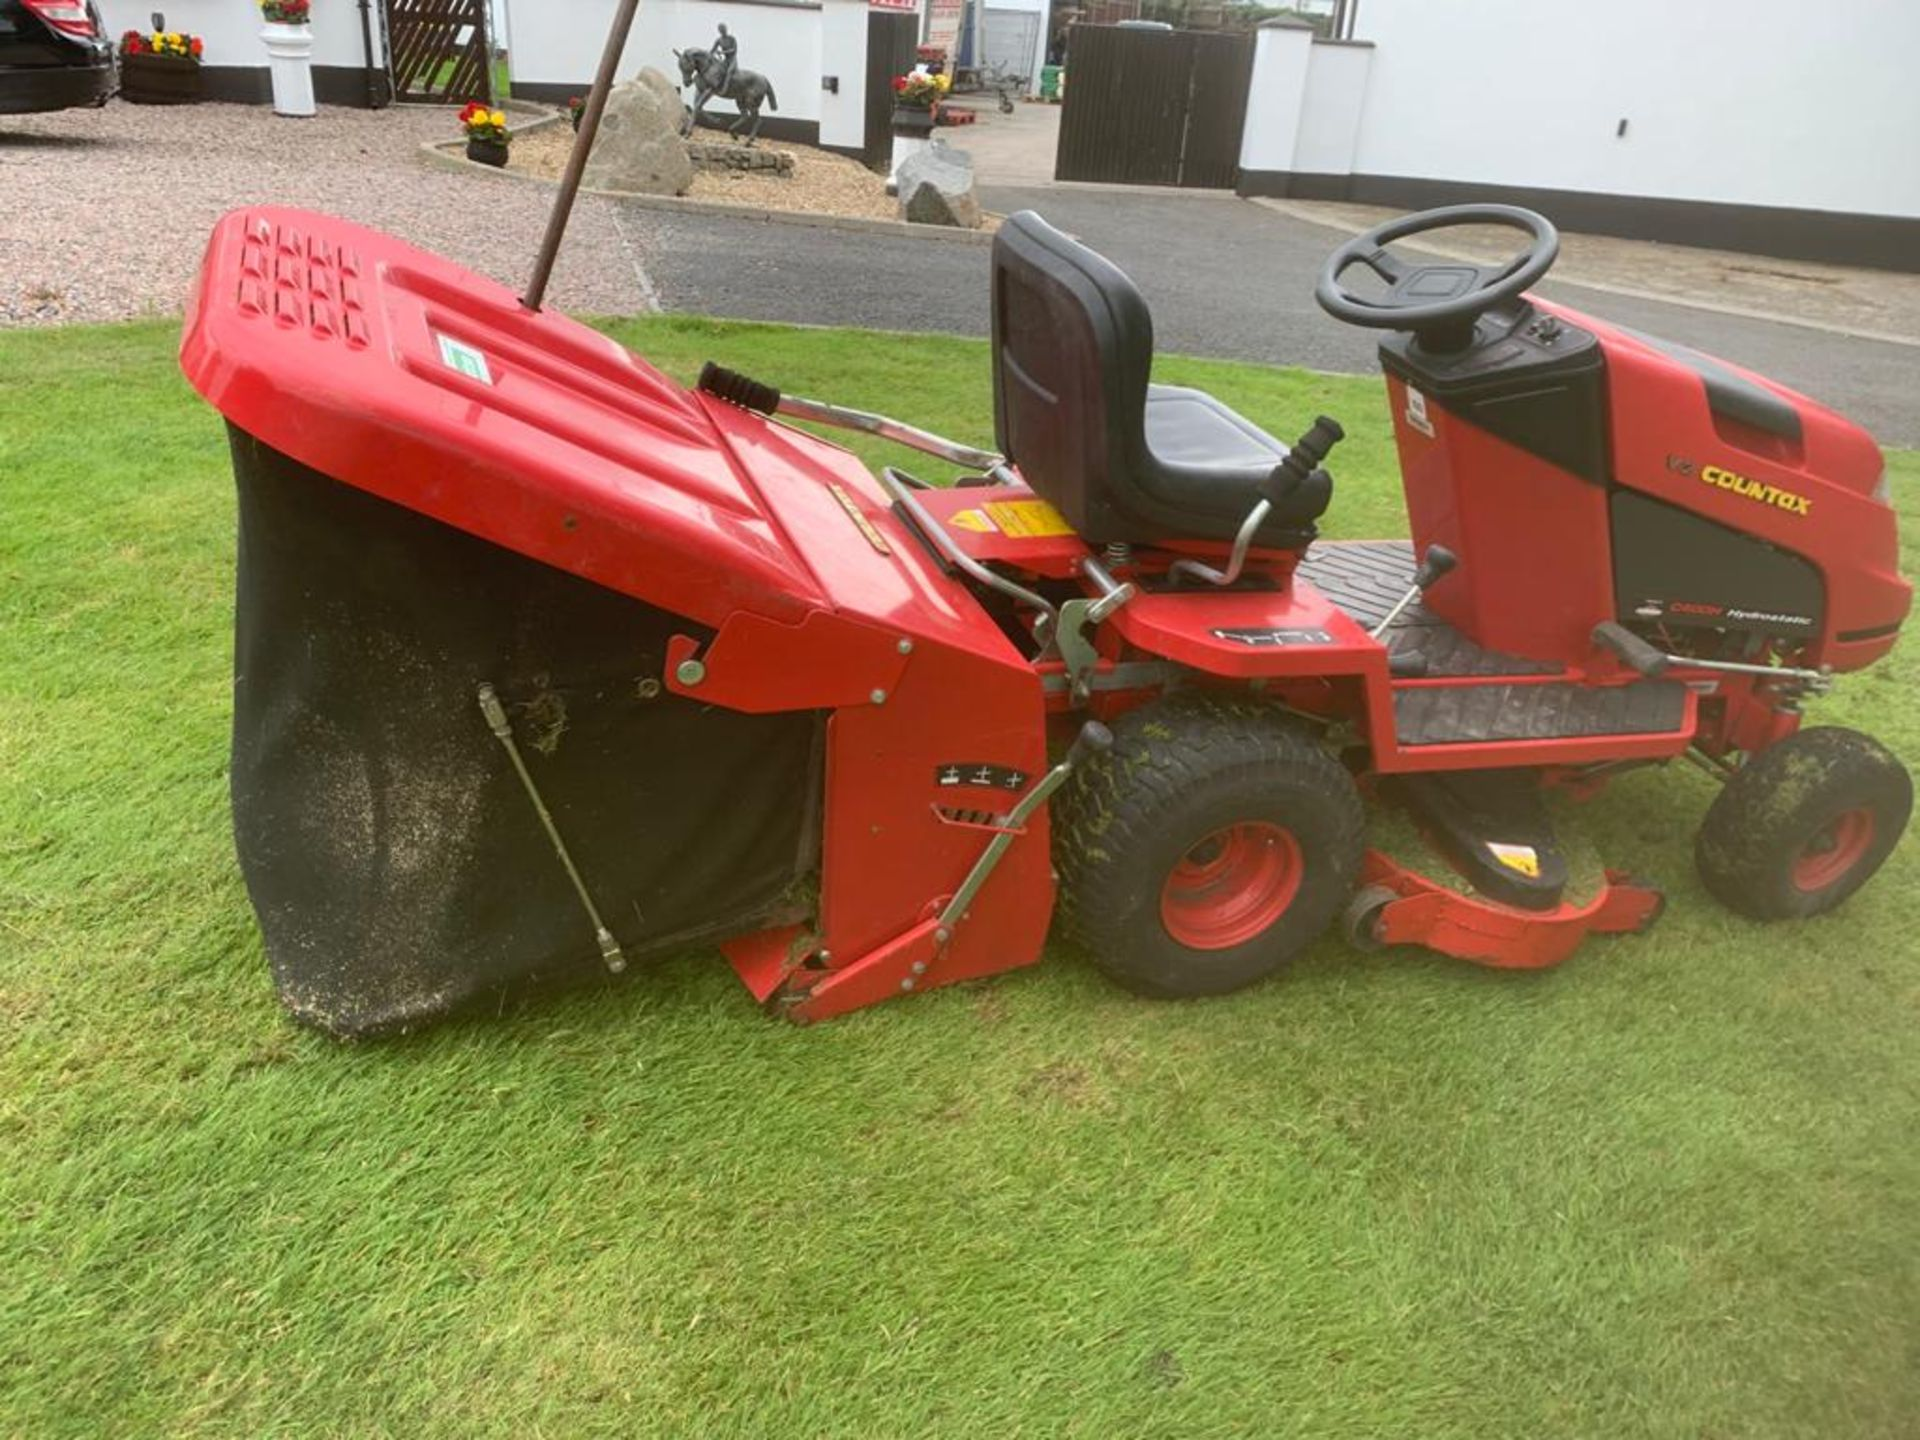 COUNTAX C400H HYDROSTATIC PETROL RIDE ON LAWN MOWER WITH SWEEPER *PLUS VAT* - Image 3 of 7